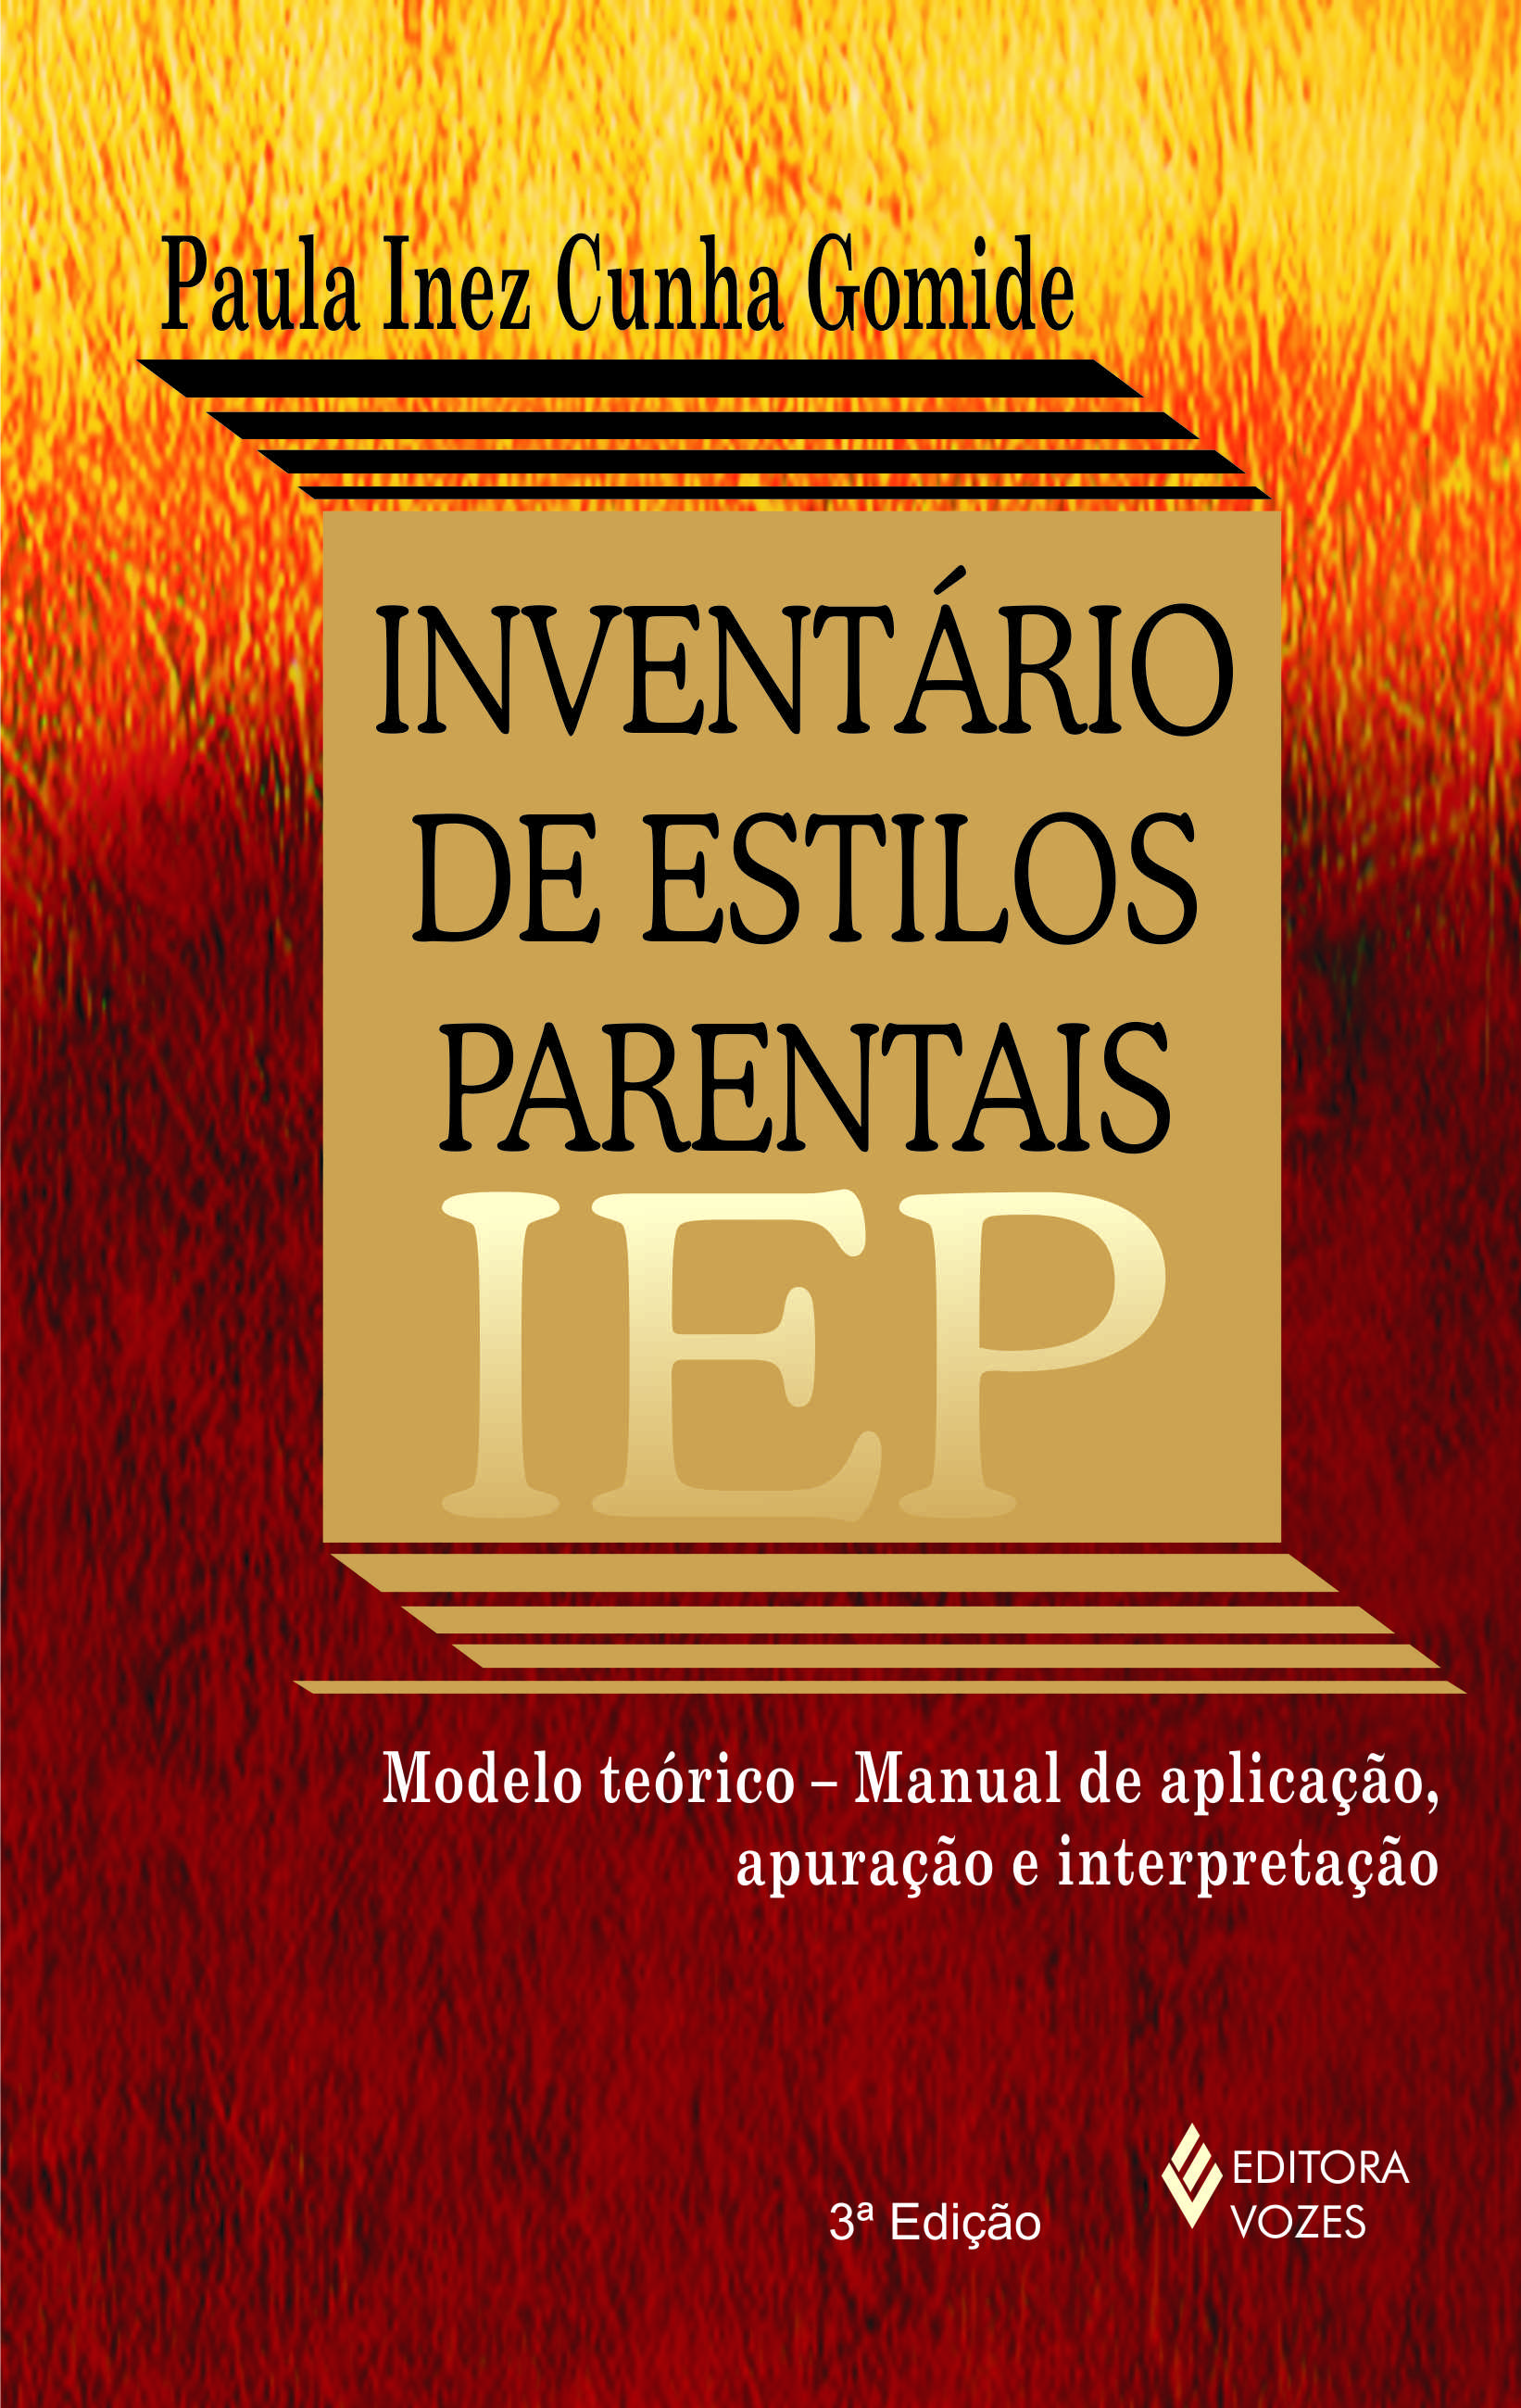 IEP: INVENTARIO DE ESTILOS PARENTAIS - MANUAL